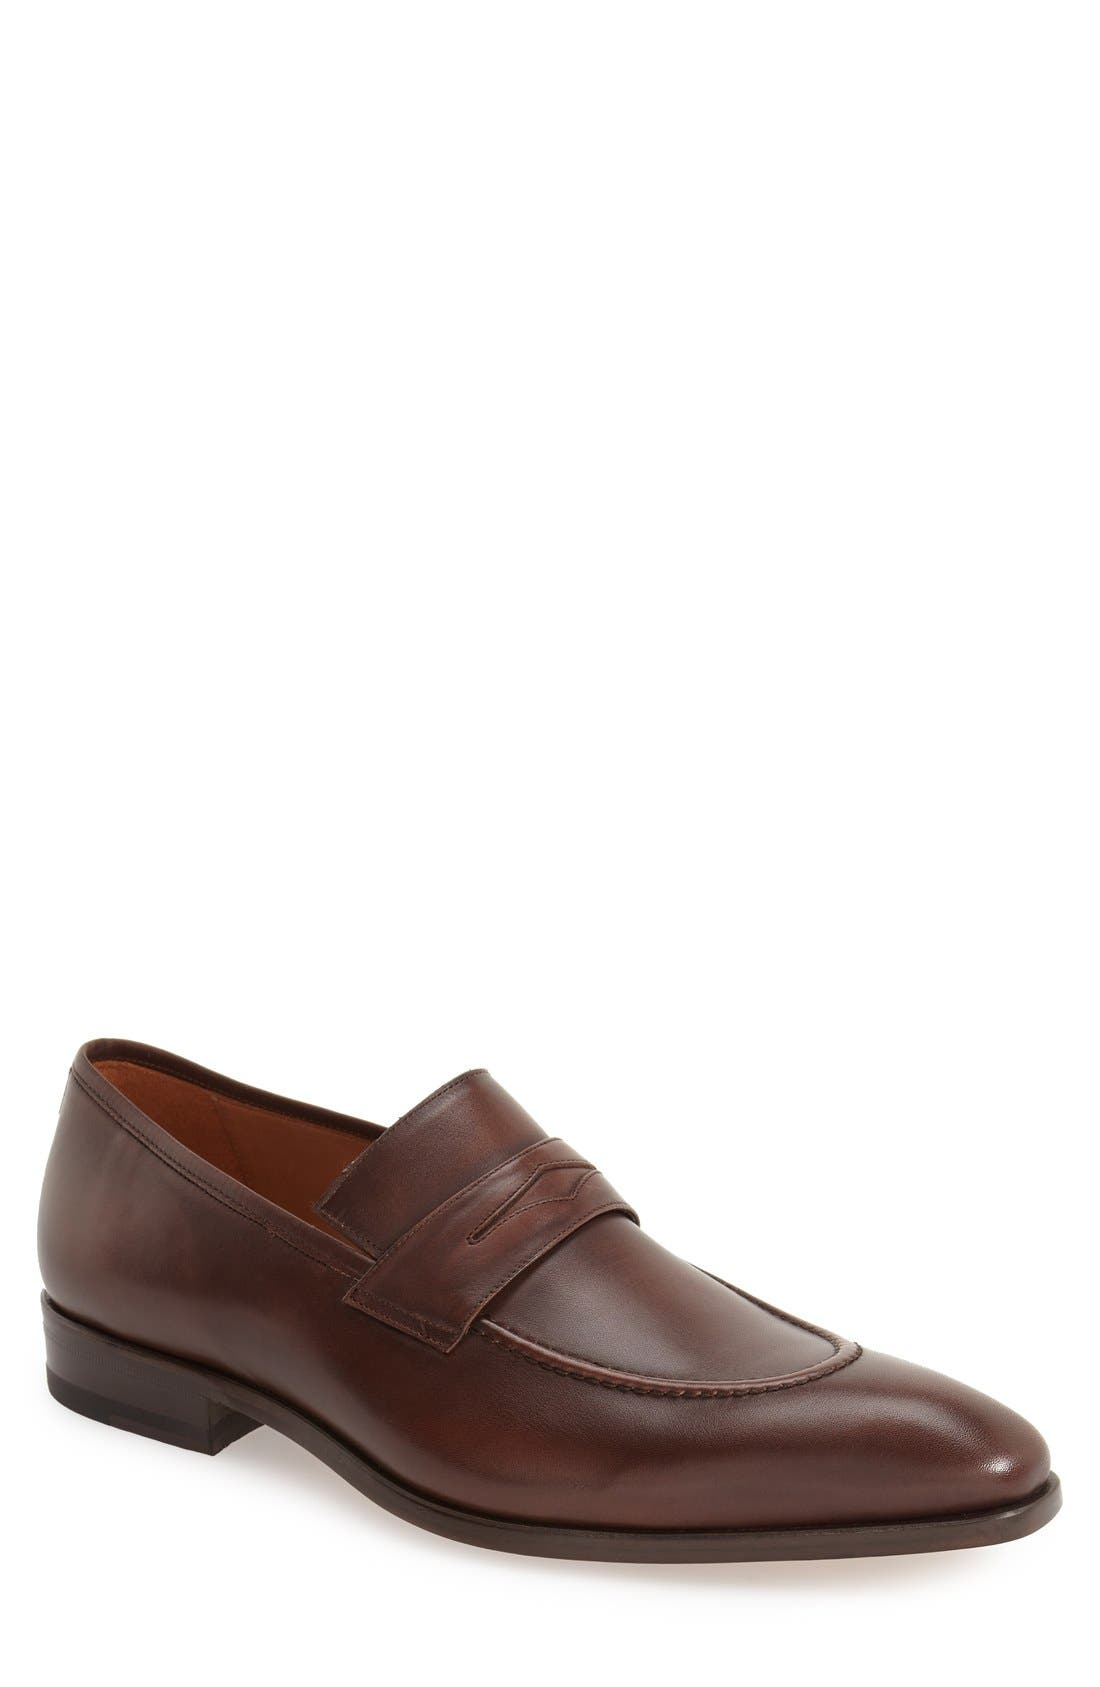 'Bione' Penny Loafer,                             Main thumbnail 2, color,